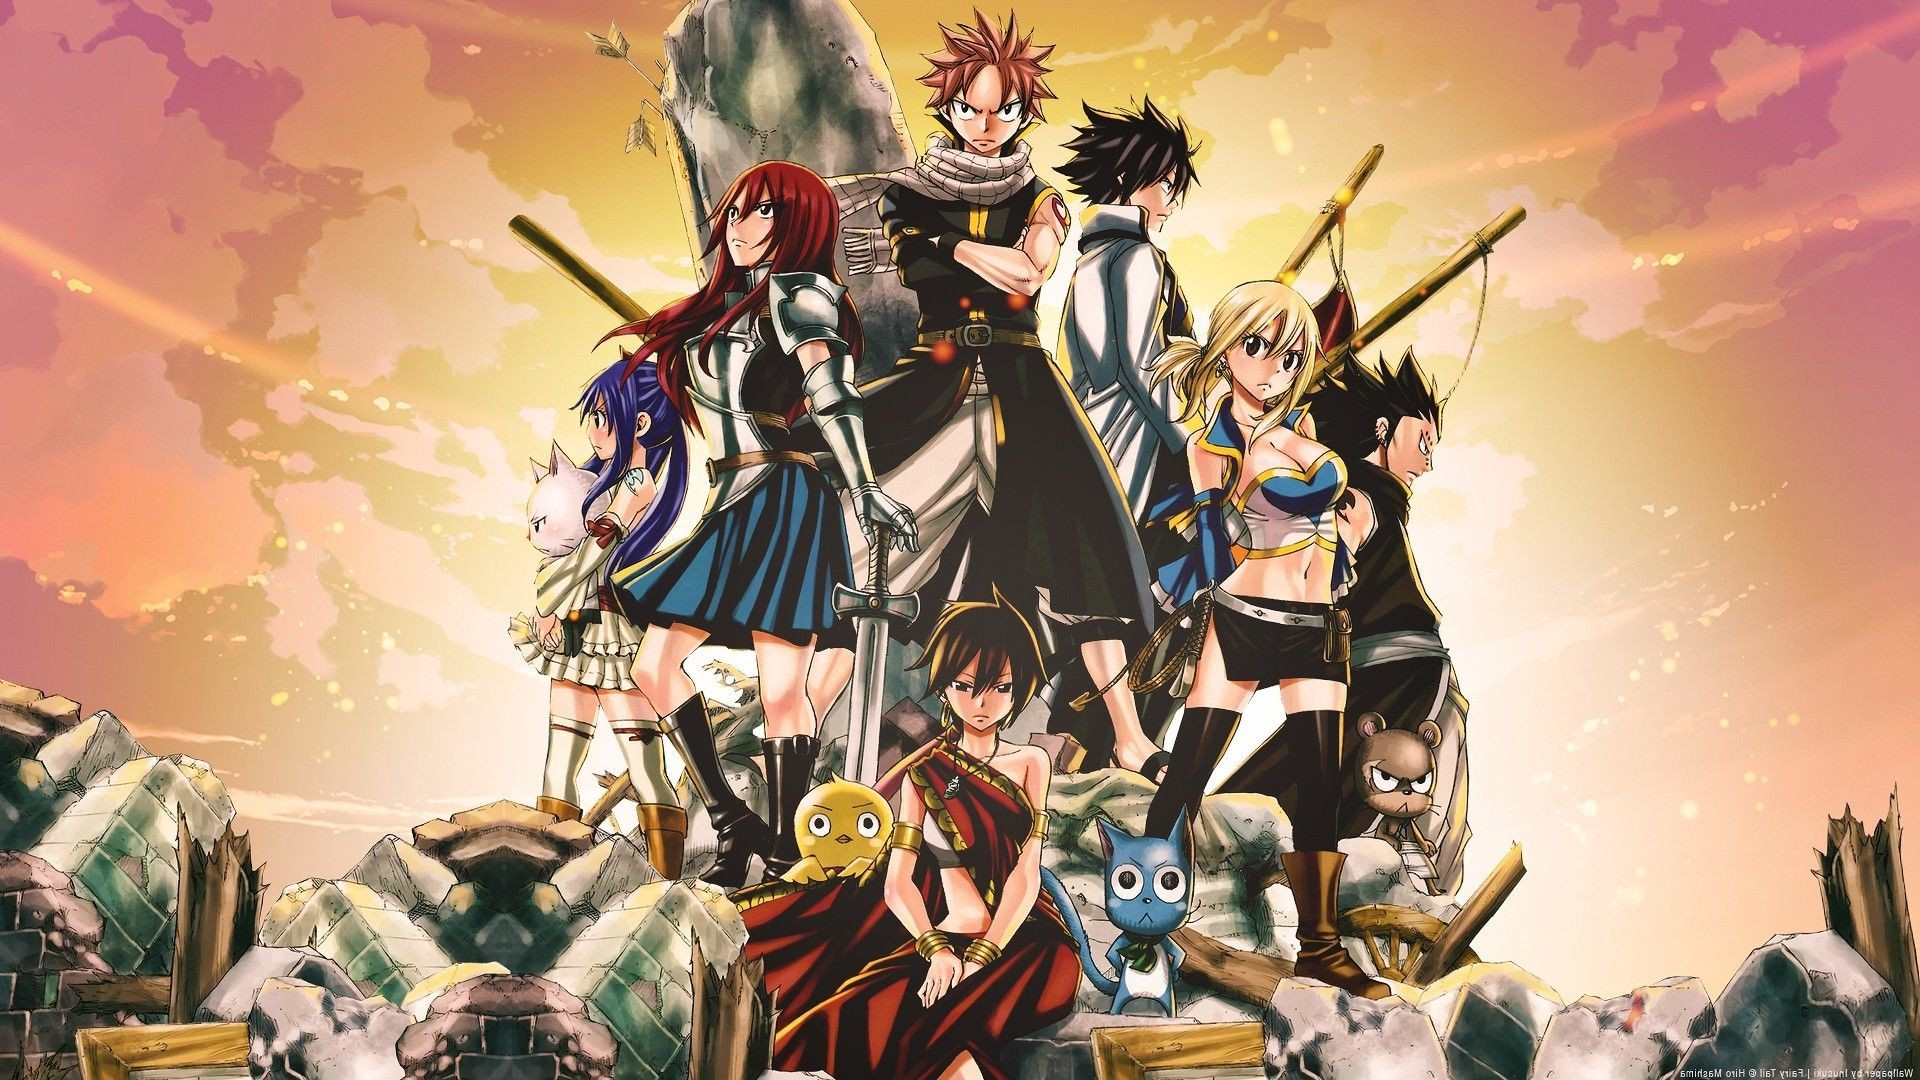 1920x1080 anime, Fairy Tail, Scarlet Erza, Fullbuster Gray, Dragneel Natsu . ...